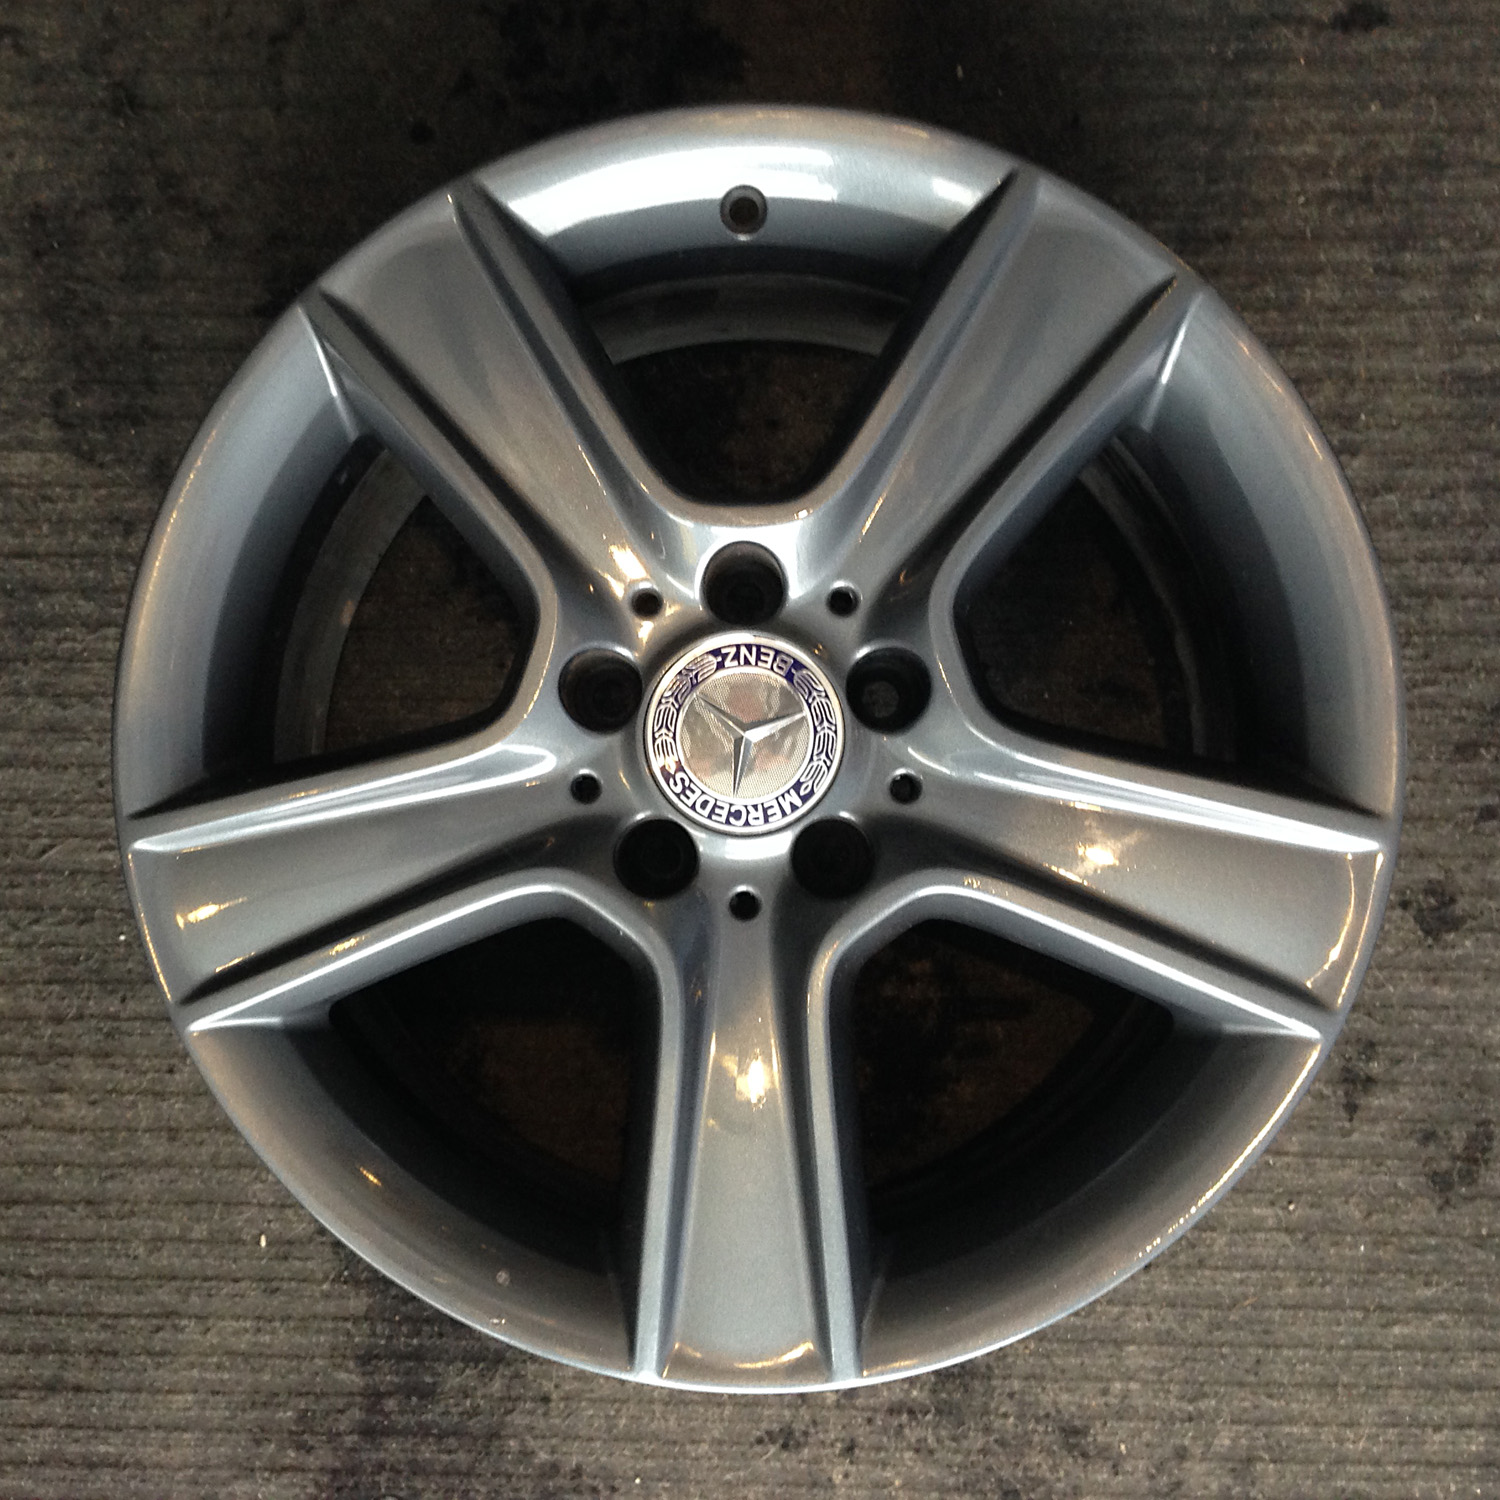 Store Tirehaus New And Used Tires And Rims - Acura 17 inch rims